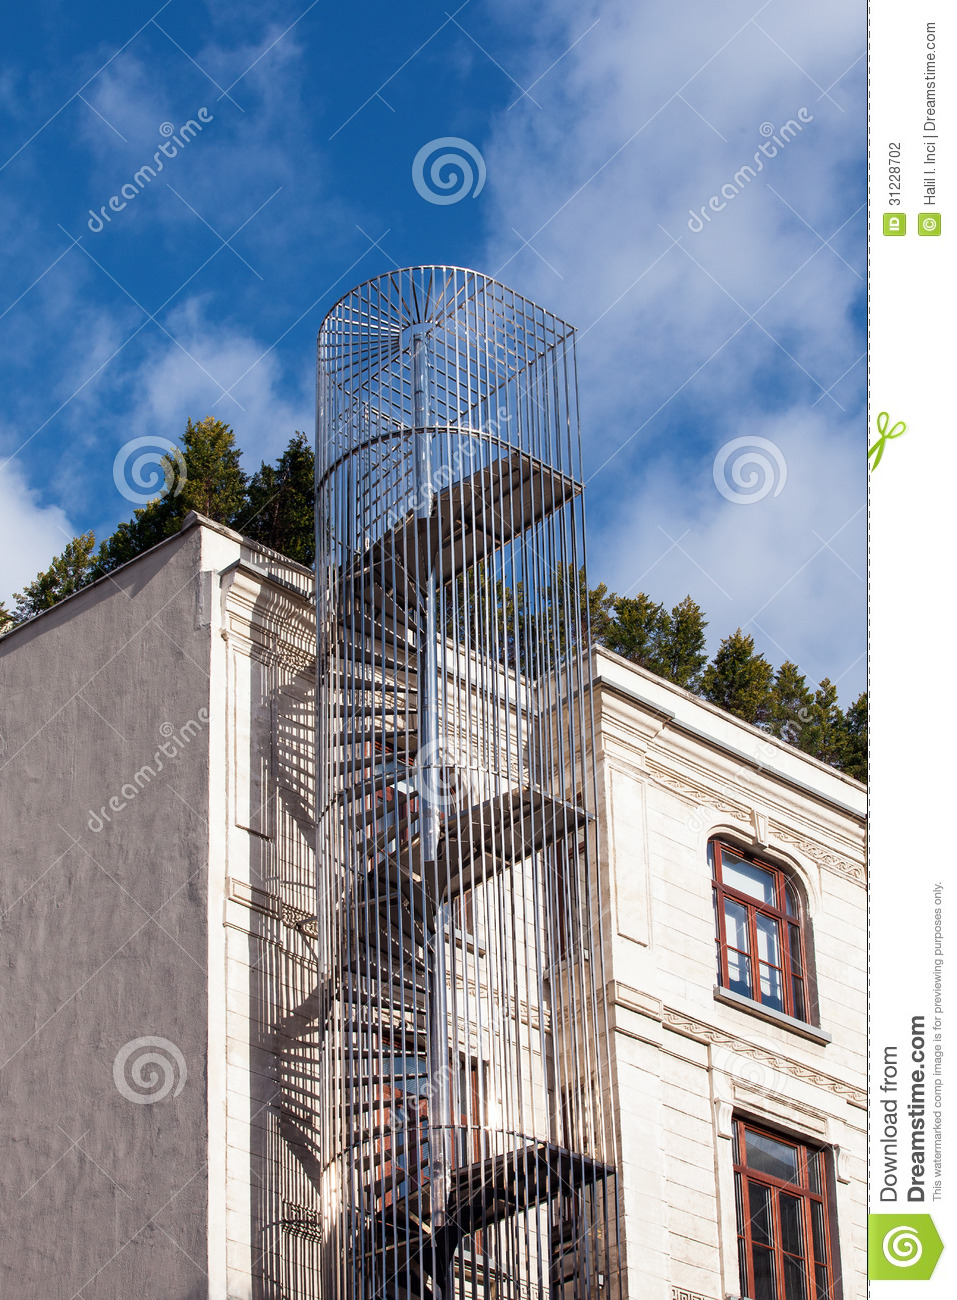 Emergency Stairs Stock Photography Image 31228702